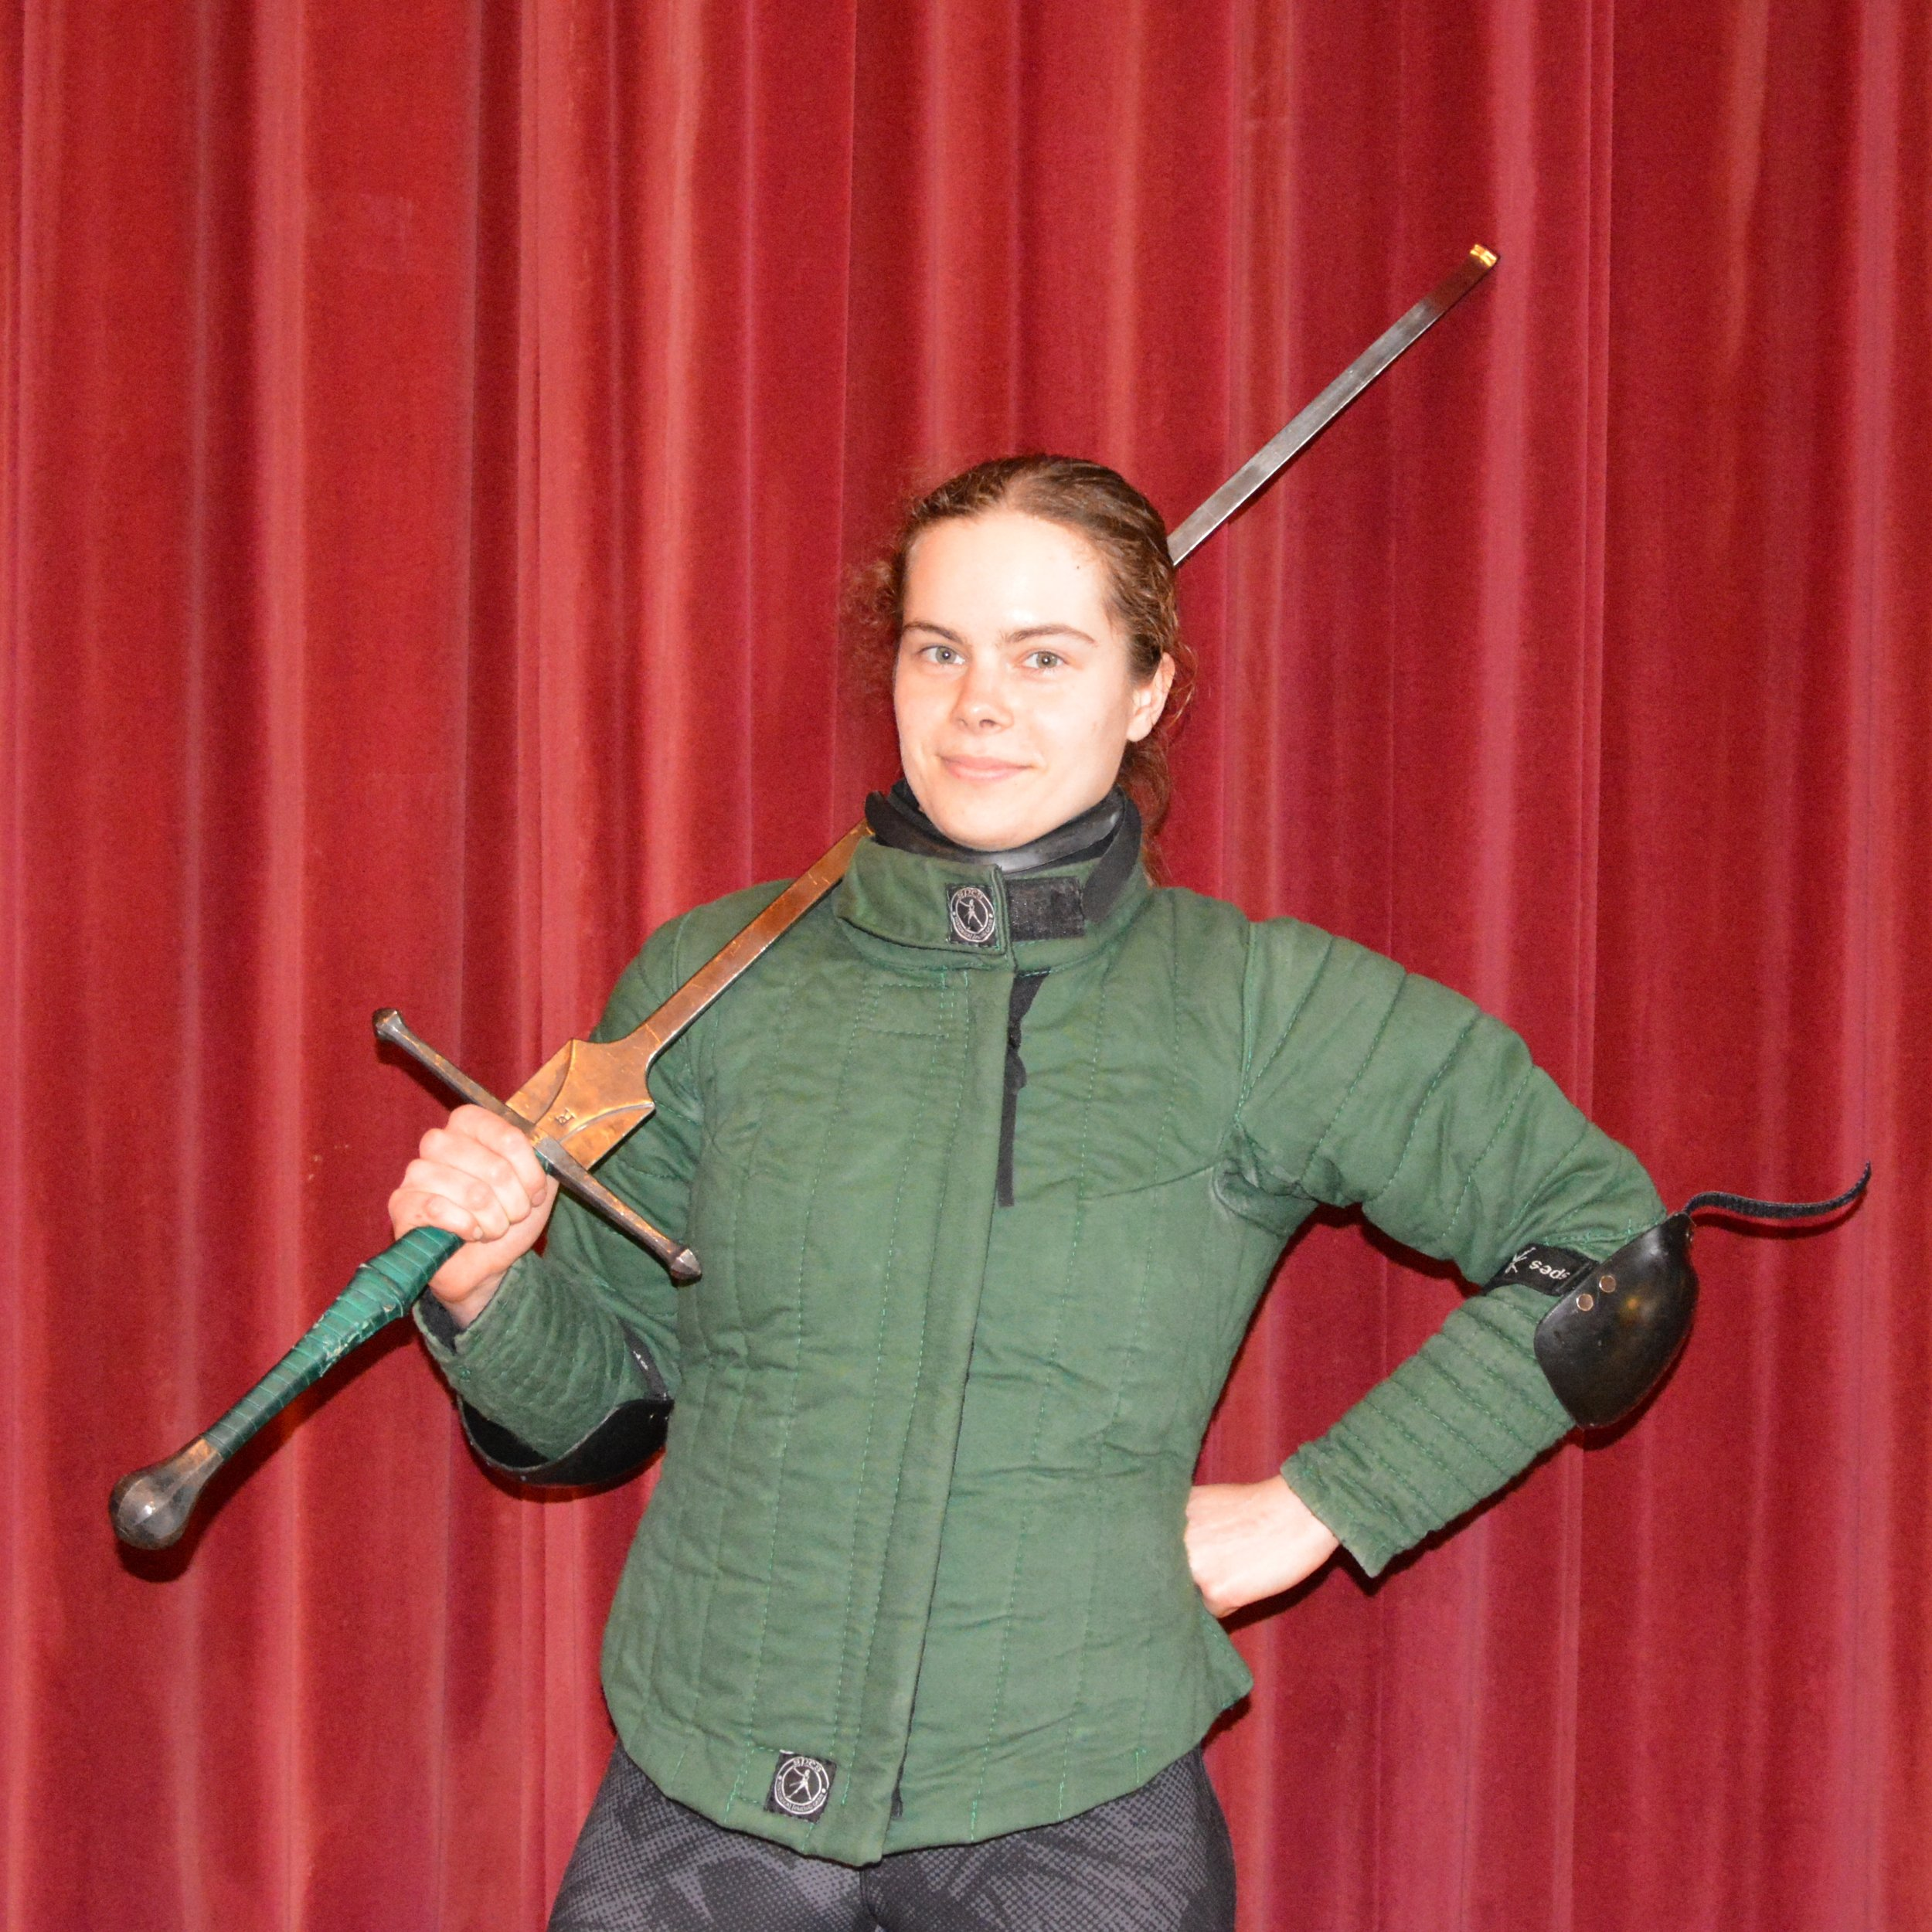 Anezka Havilkova - Vice-President, Co-Founder of Glasgow HEMADisciplines Studied: German Longsword, Messer and Sword and BuckerI started practicing HEMA in 2016 when I joined Glasgow University Historical Arts society, and I quickly fell in love with sword fighting, which led me to training with Academy of Historical Arts too.I helped found Glasgow HEMA in order to make HEMA accessible to as many people as possible. I have a special interest in introducing women to the sport.